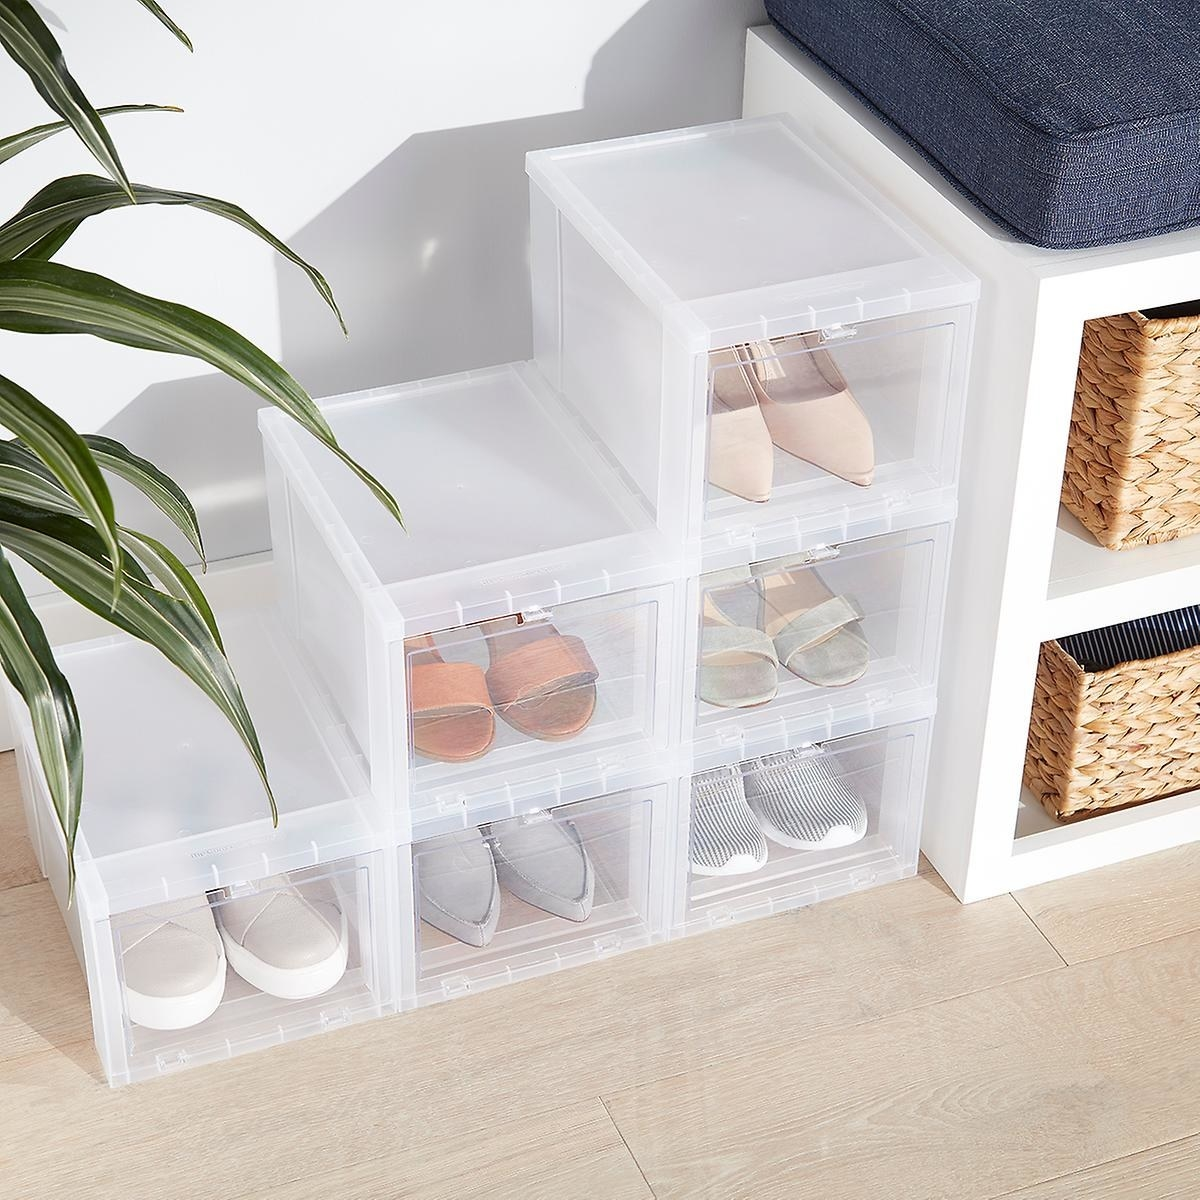 six of the clear shoe boxes with sandals, sneakers, and flats inside